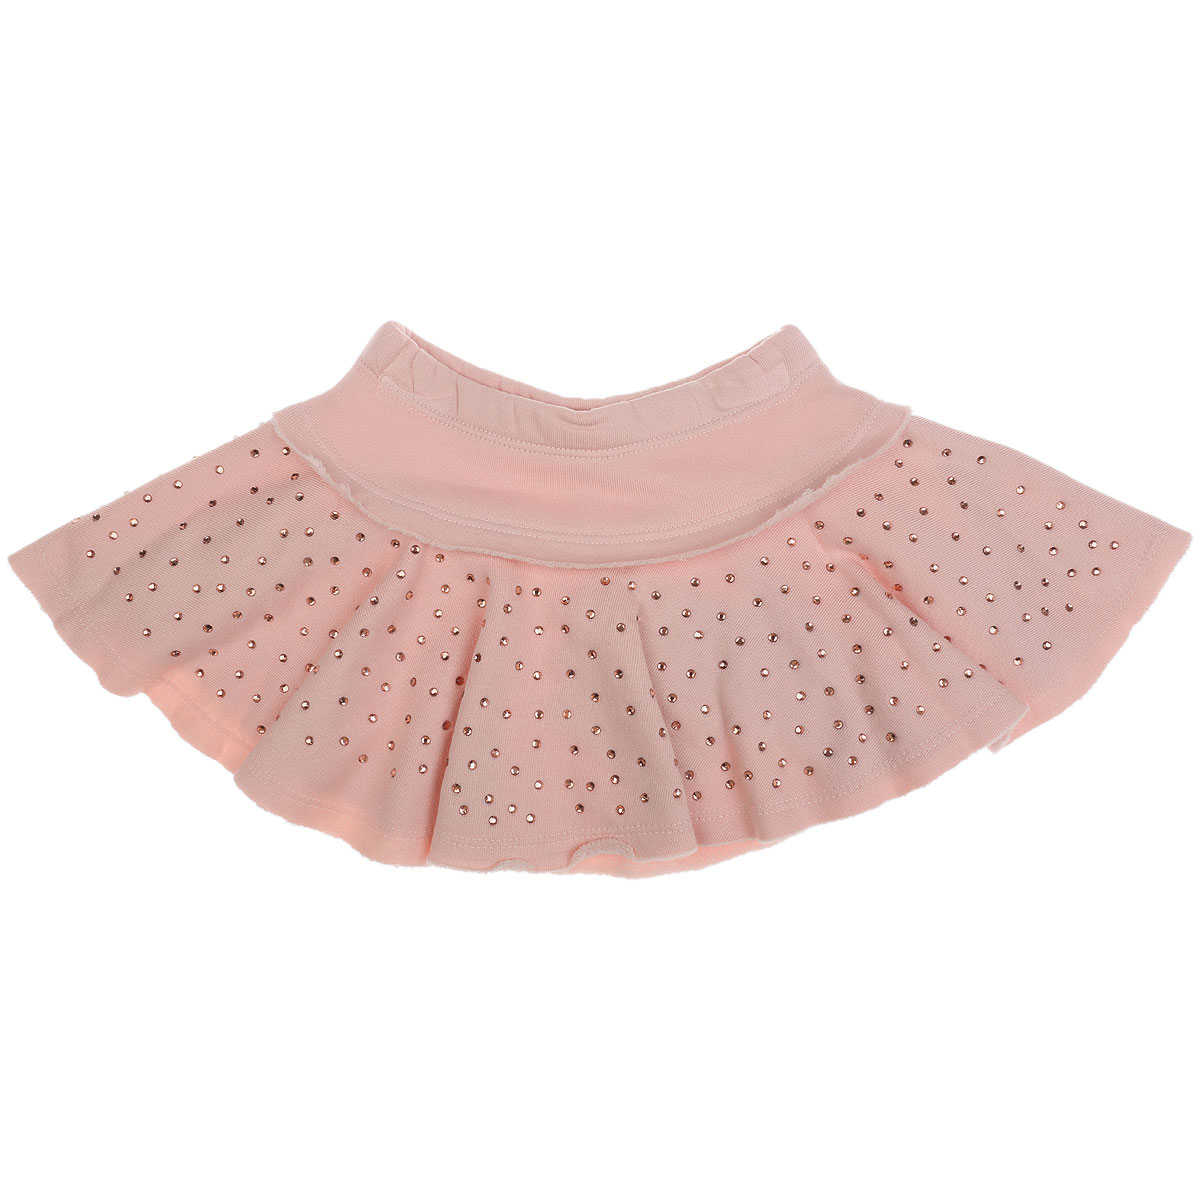 Monnalisa Baby Skirts for Girls On Sale in Outlet Pink SE - GOOFASH